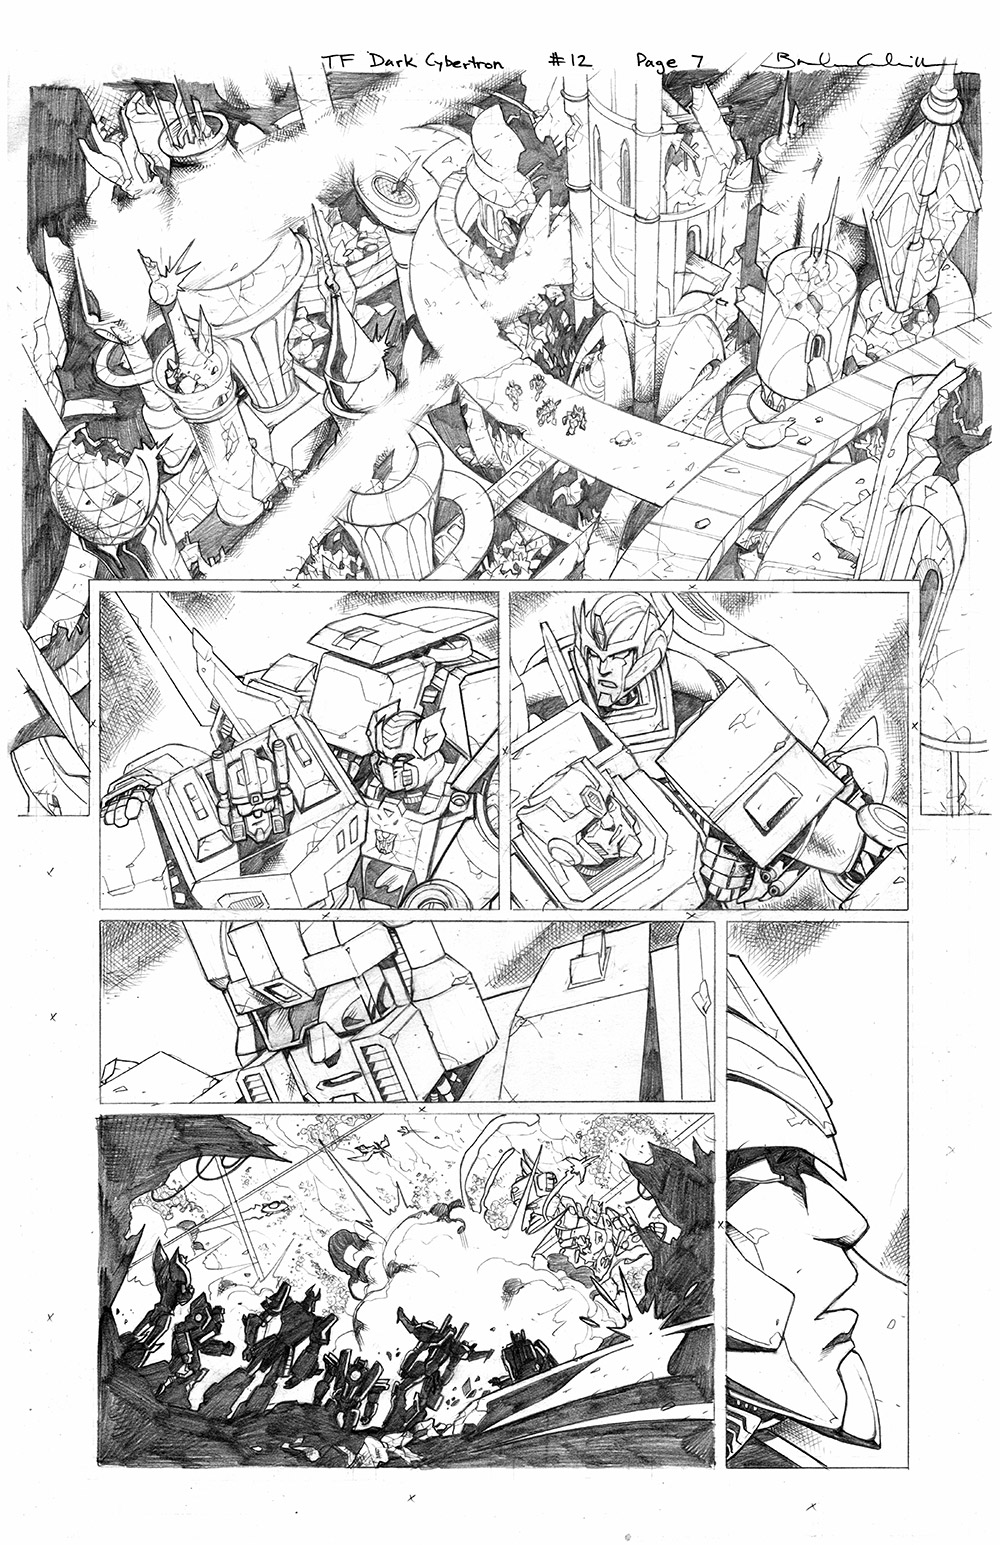 Transformers: Dark Cybertron #12, Page 7